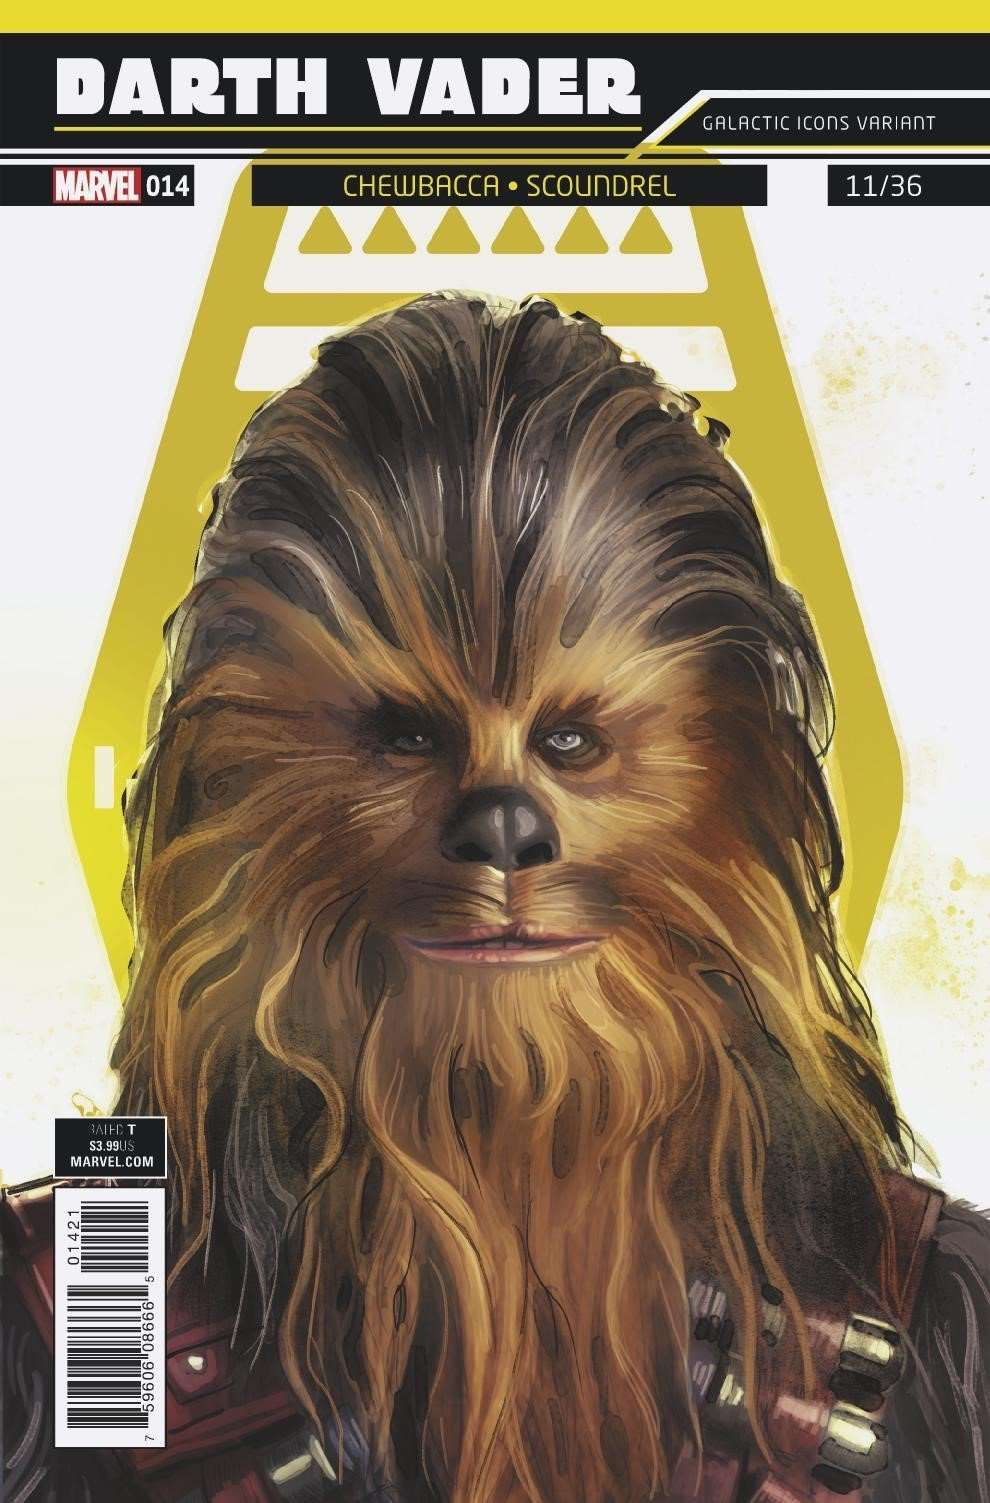 Darth Vader #14, Galactic Icon variant - Chewbacca